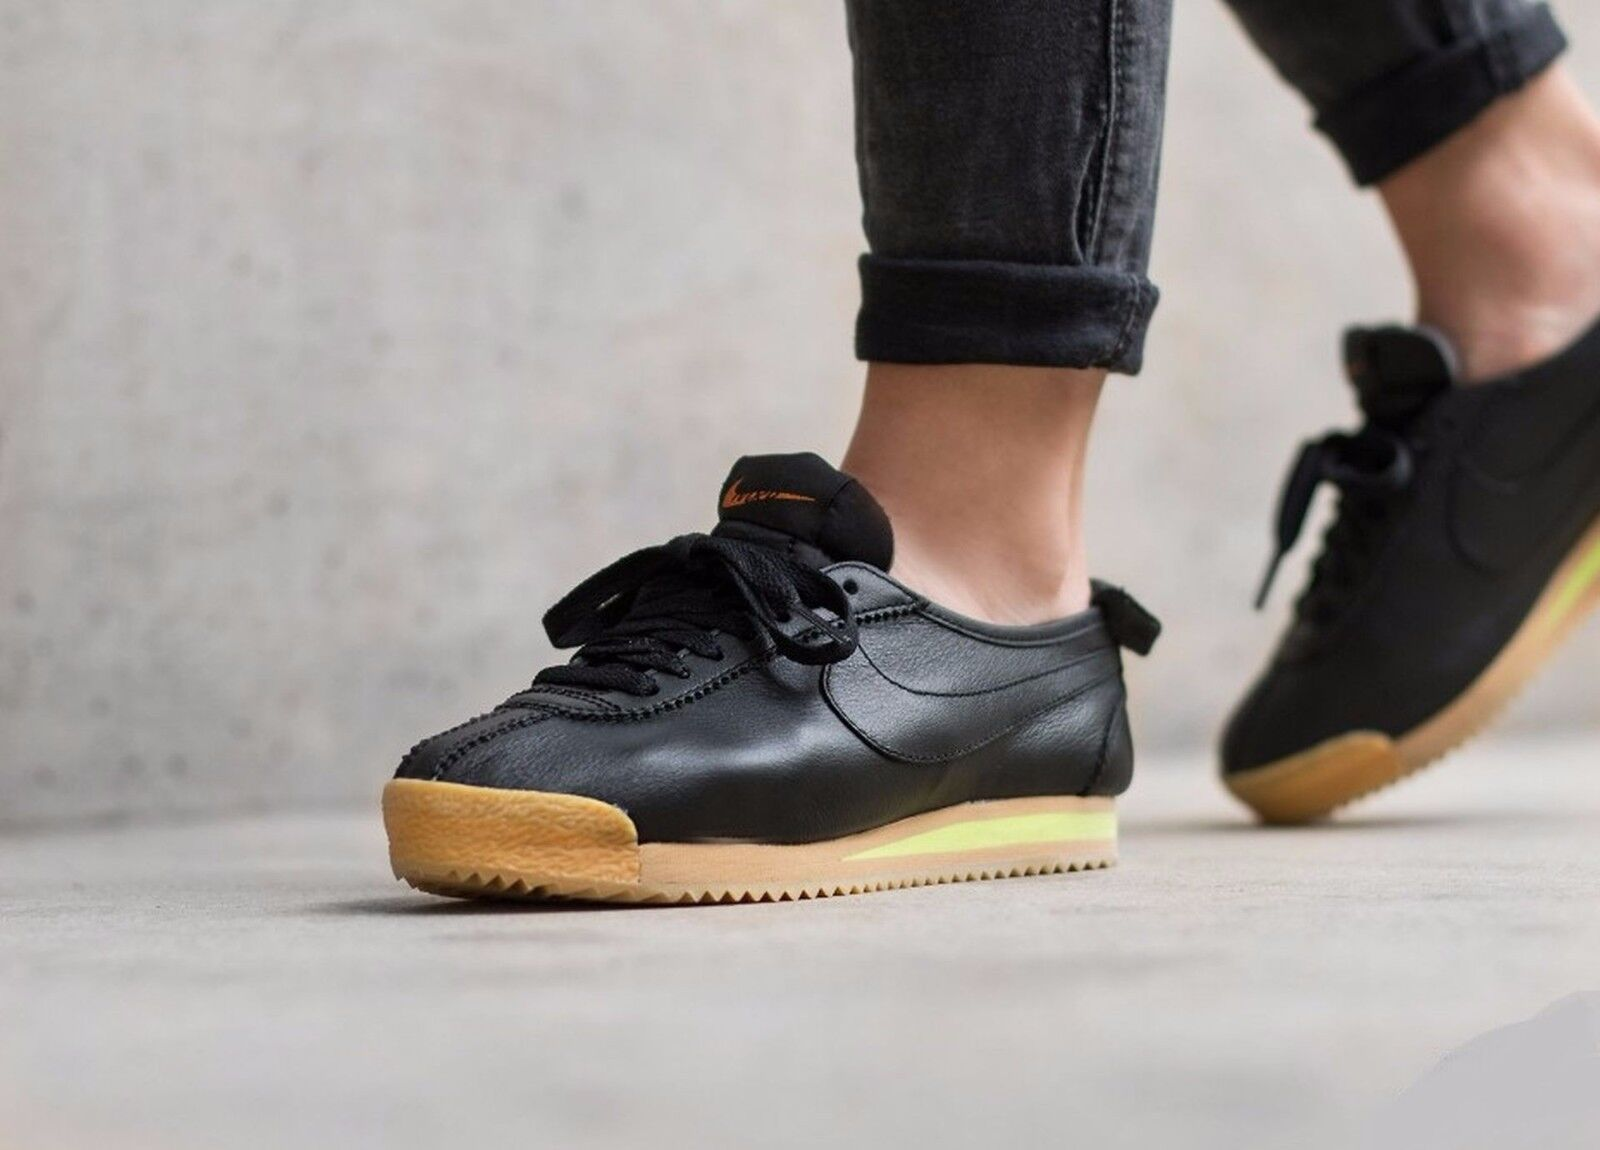 Nike Cortez '72 847126-001 Black/Balsa-Gum Yellow Wmn Sz 9.5 Leather